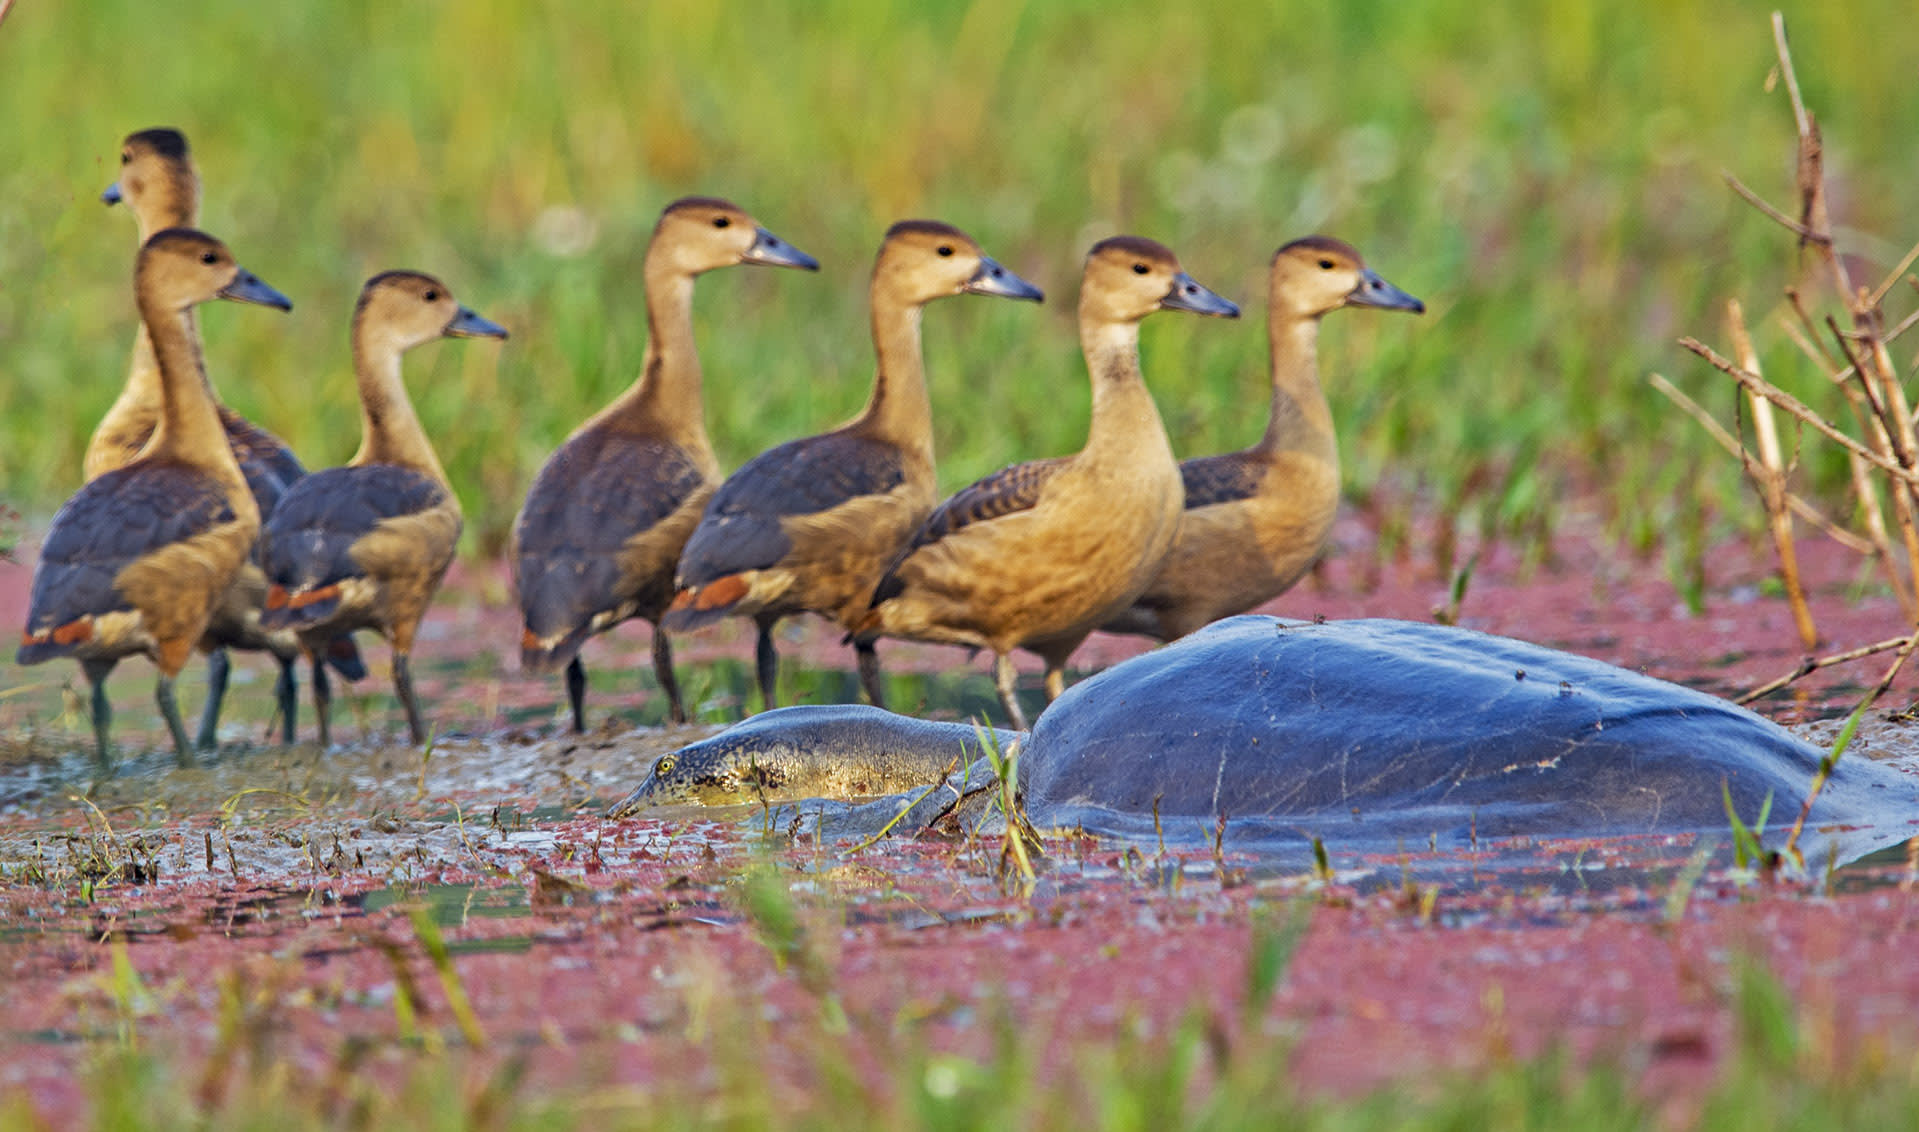 A Ganges softshell turtle surfaces to breathe as a flock of lesser whistling ducks forage in the background.